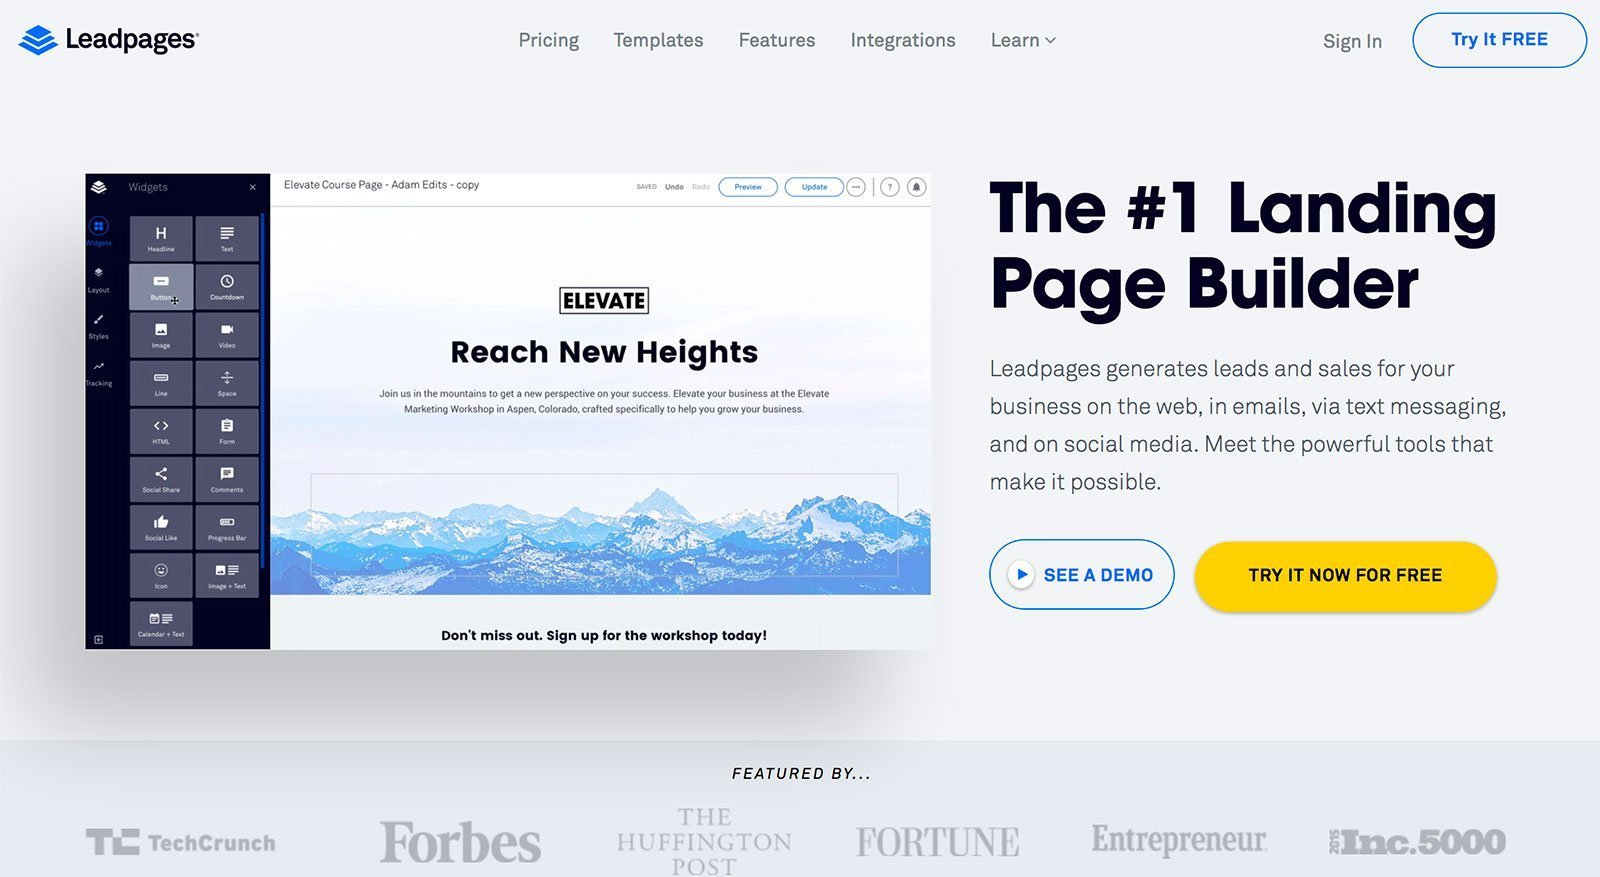 Amazon Leadpages Offer 2020